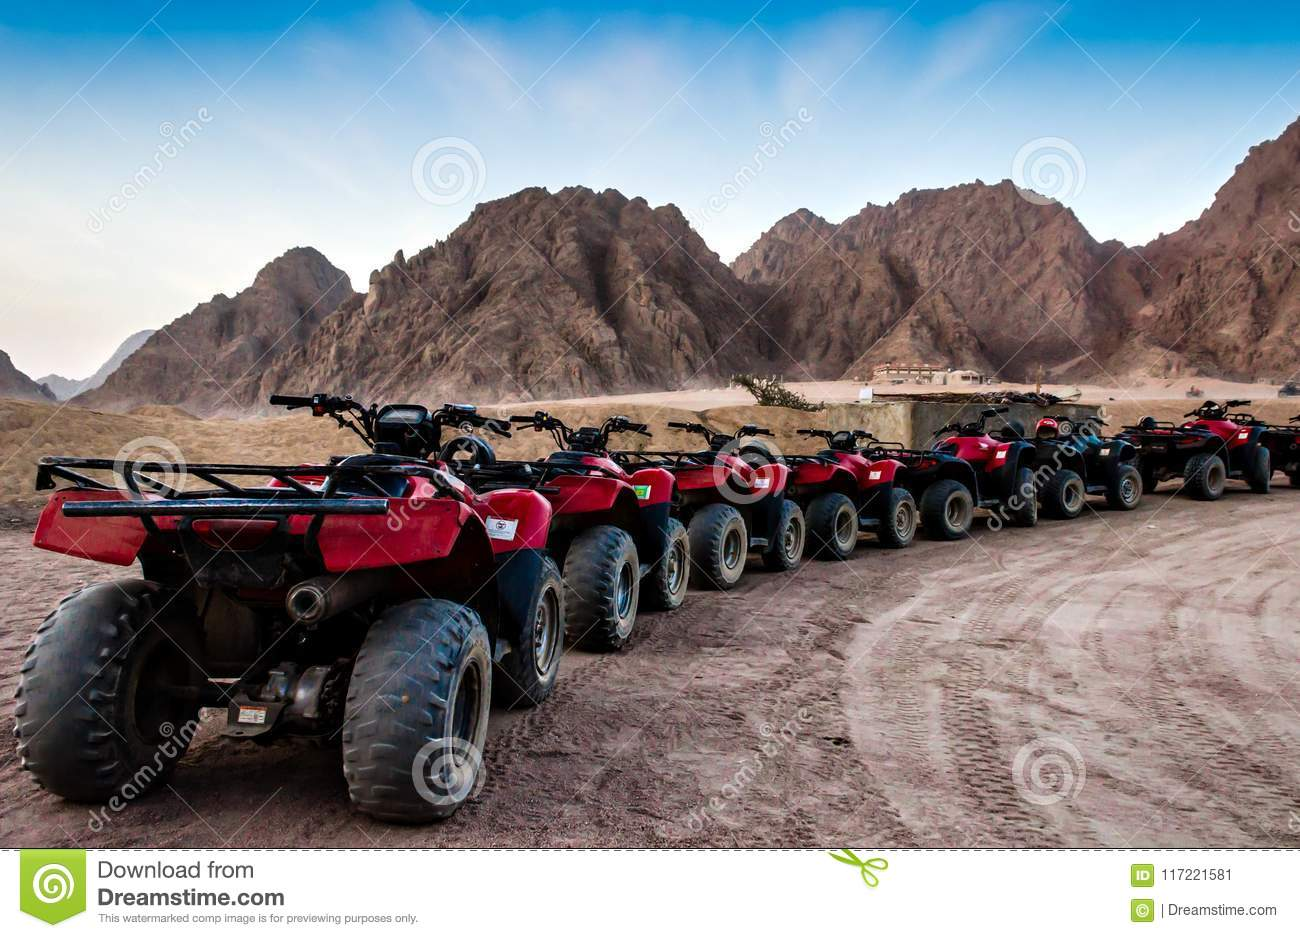 Moto safari in the desert a row of red ATVs on a halt against the background of rocky mountains and a blue sky Egypt